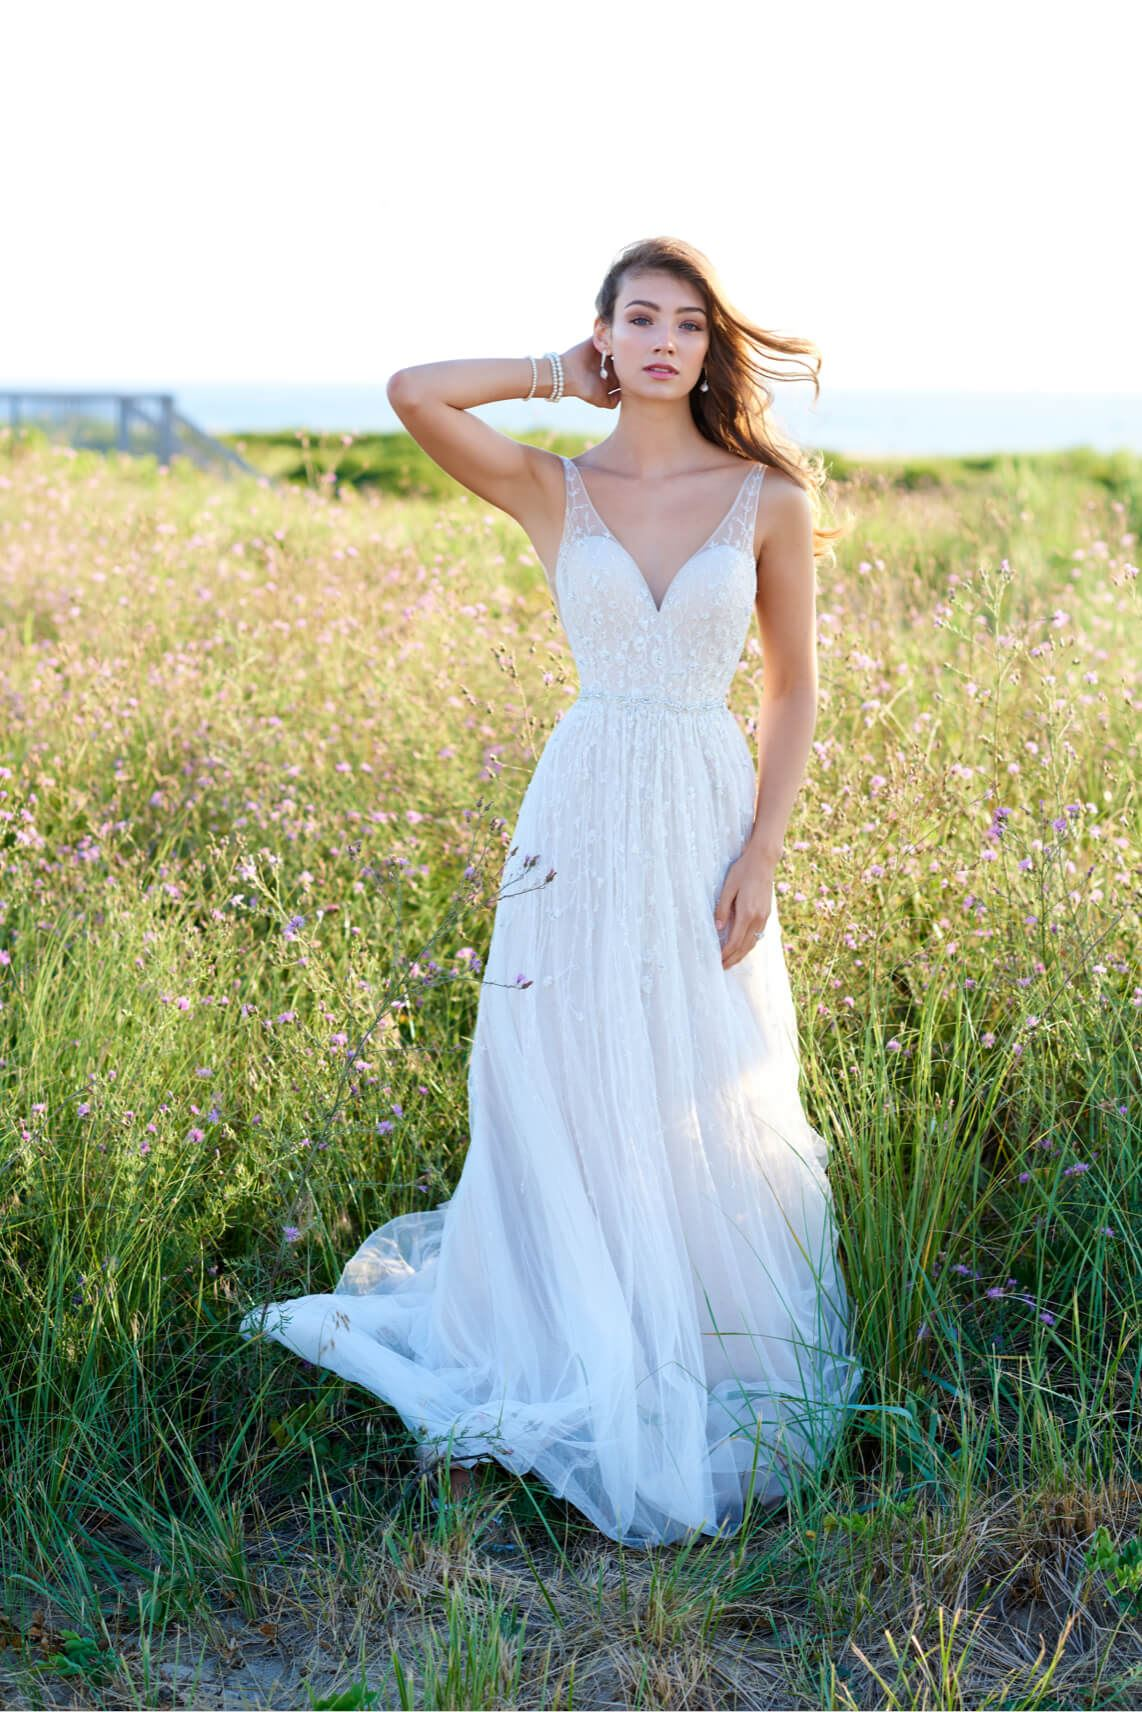 Brunette model in field wearing wedding dress